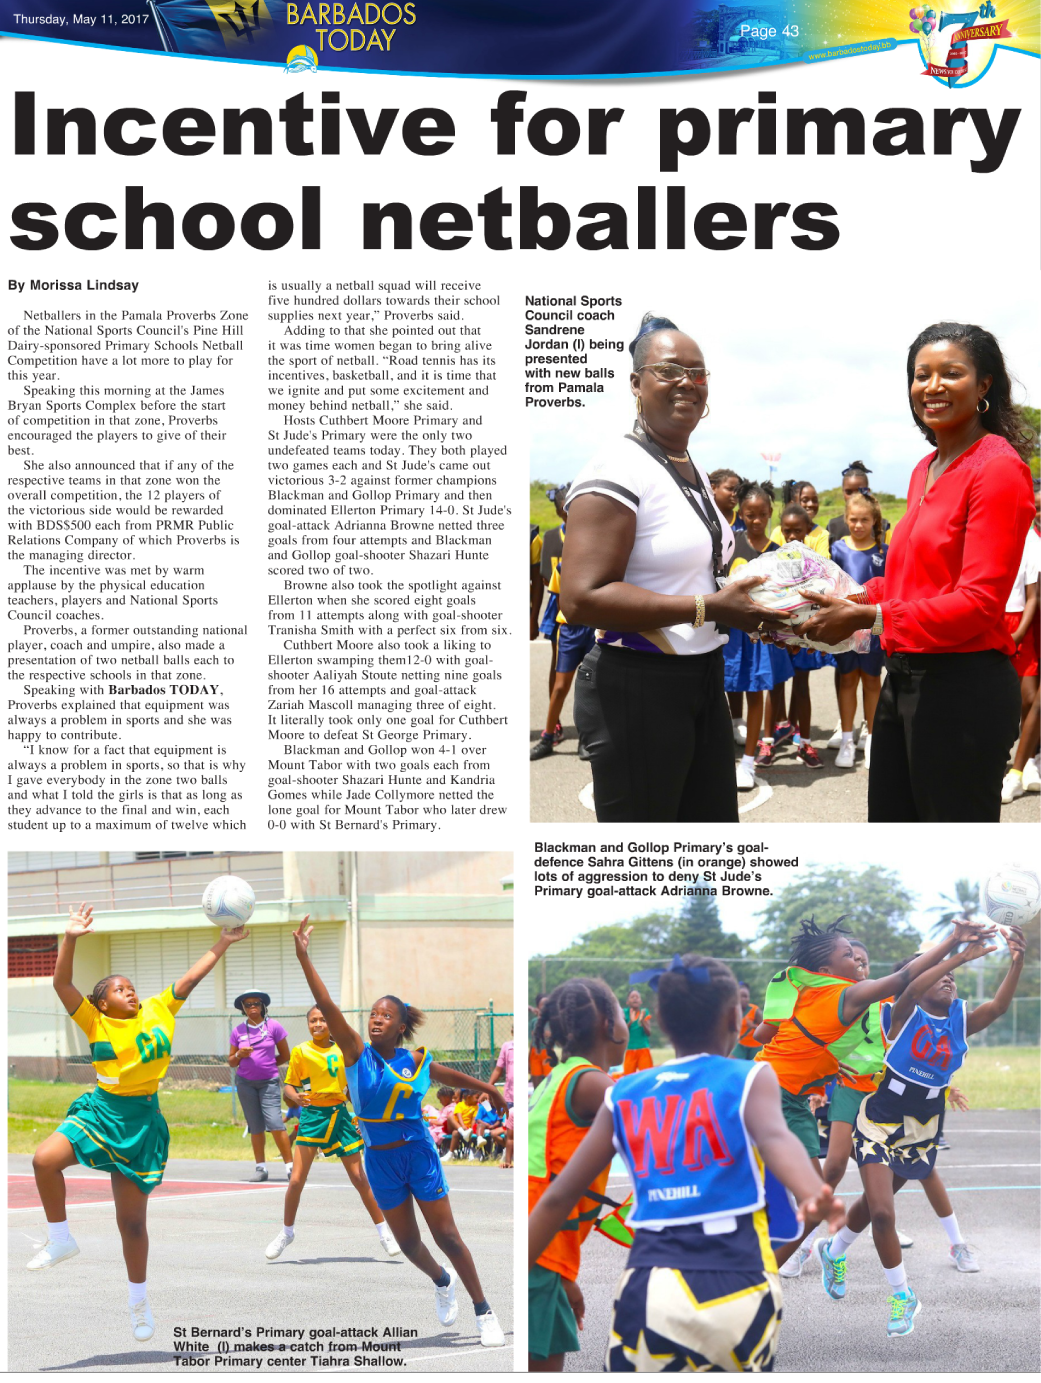 Pamala Proverbs of PRMR Inc. donates netballs to Barbadian athletes